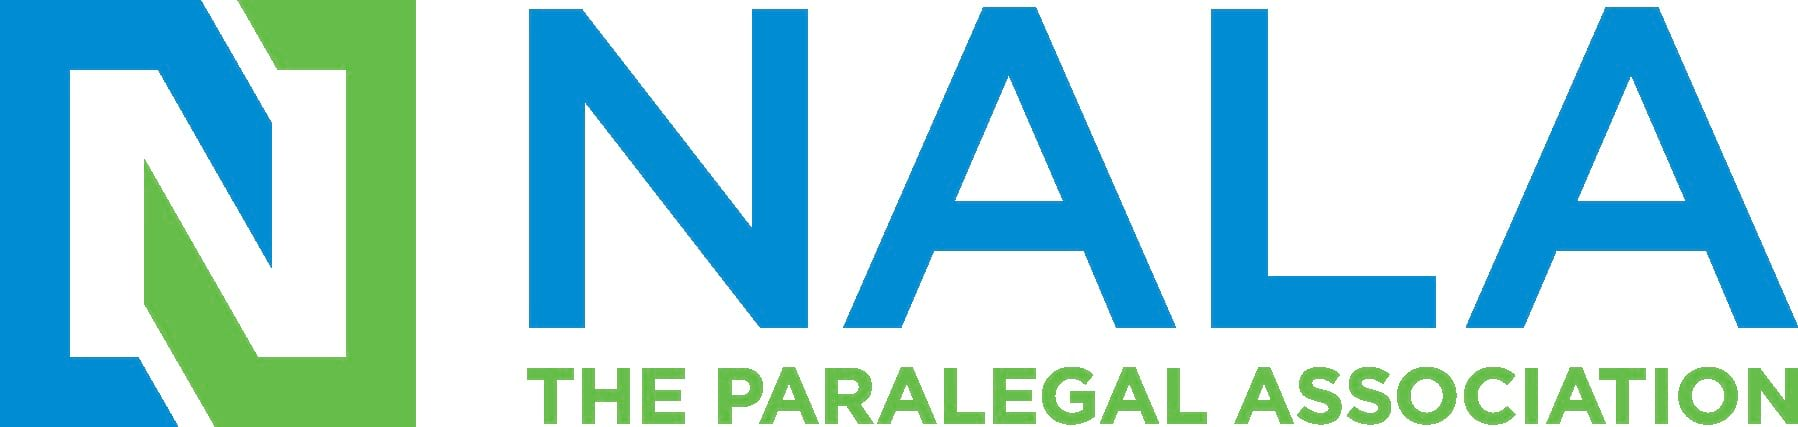 The National Association of Legal Assistants